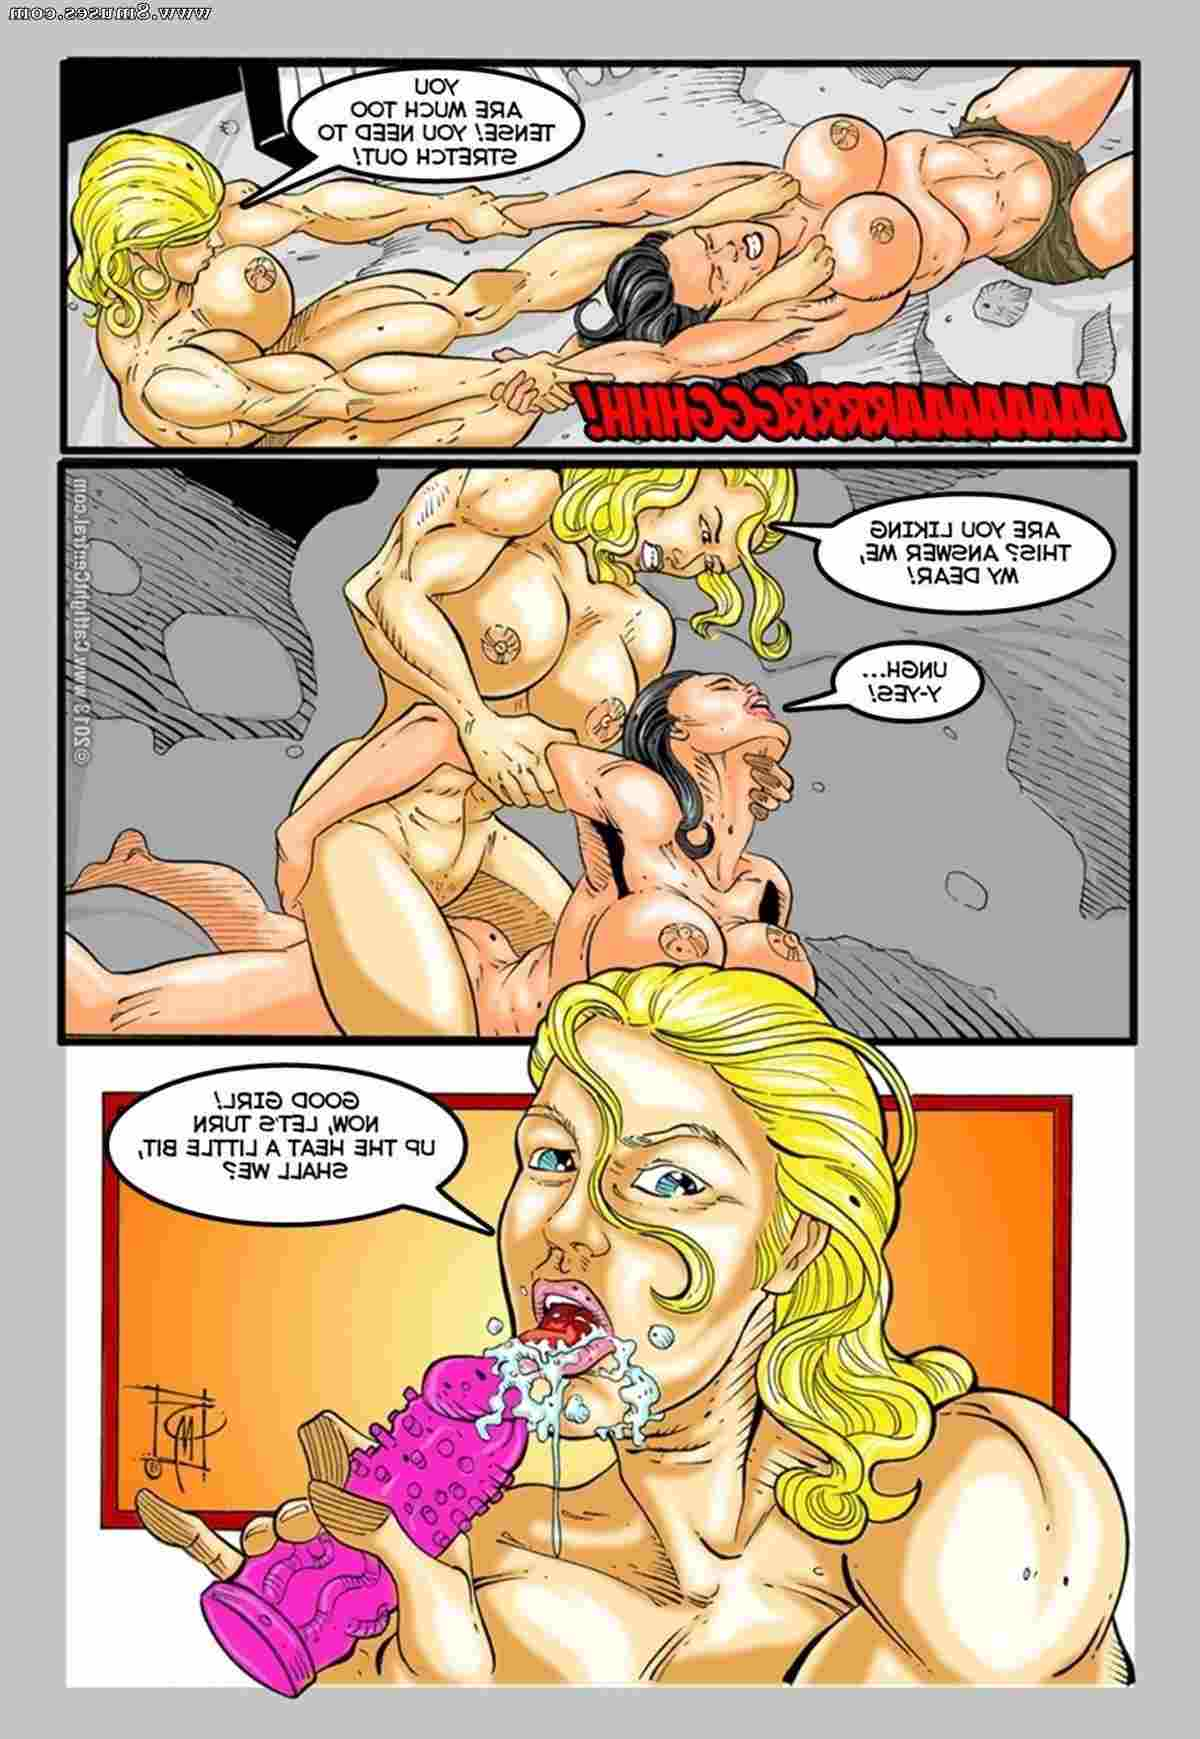 Central-Comics/Catfight-Central/Prison-Bitches Prison_Bitches__8muses_-_Sex_and_Porn_Comics_40.jpg